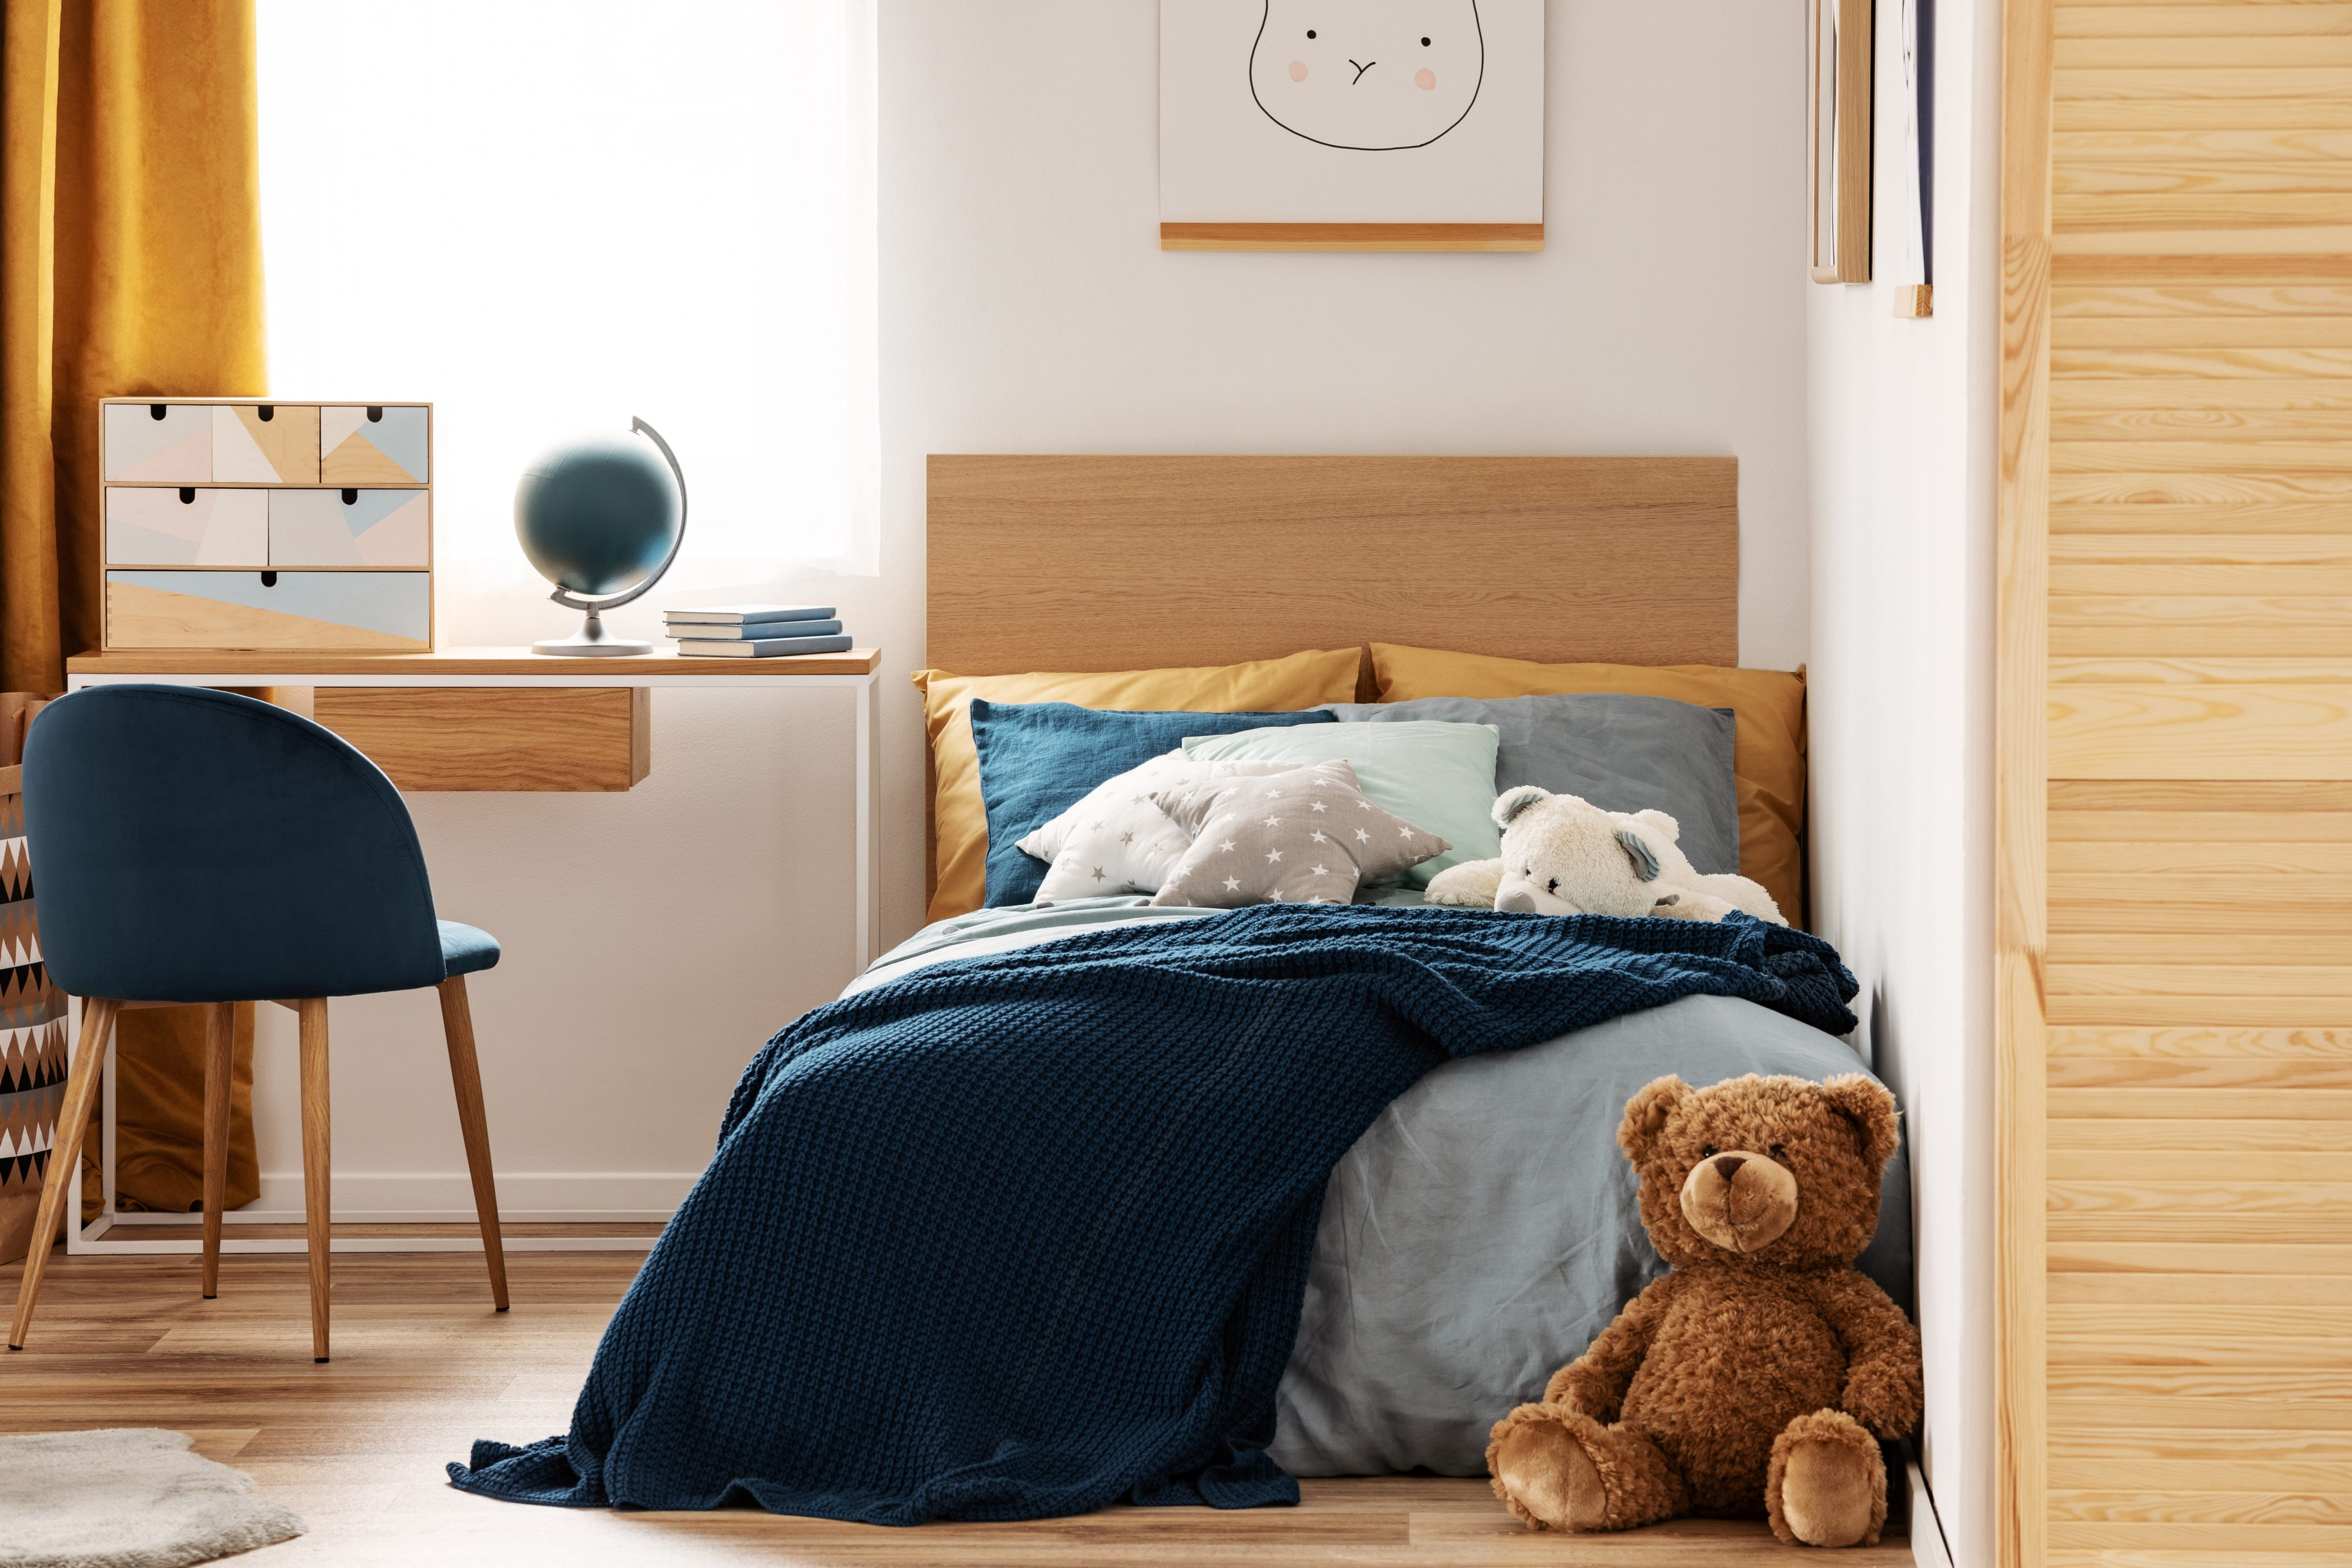 Brown cute teddy bear on wooden floor of stylish bedroom interior for kids